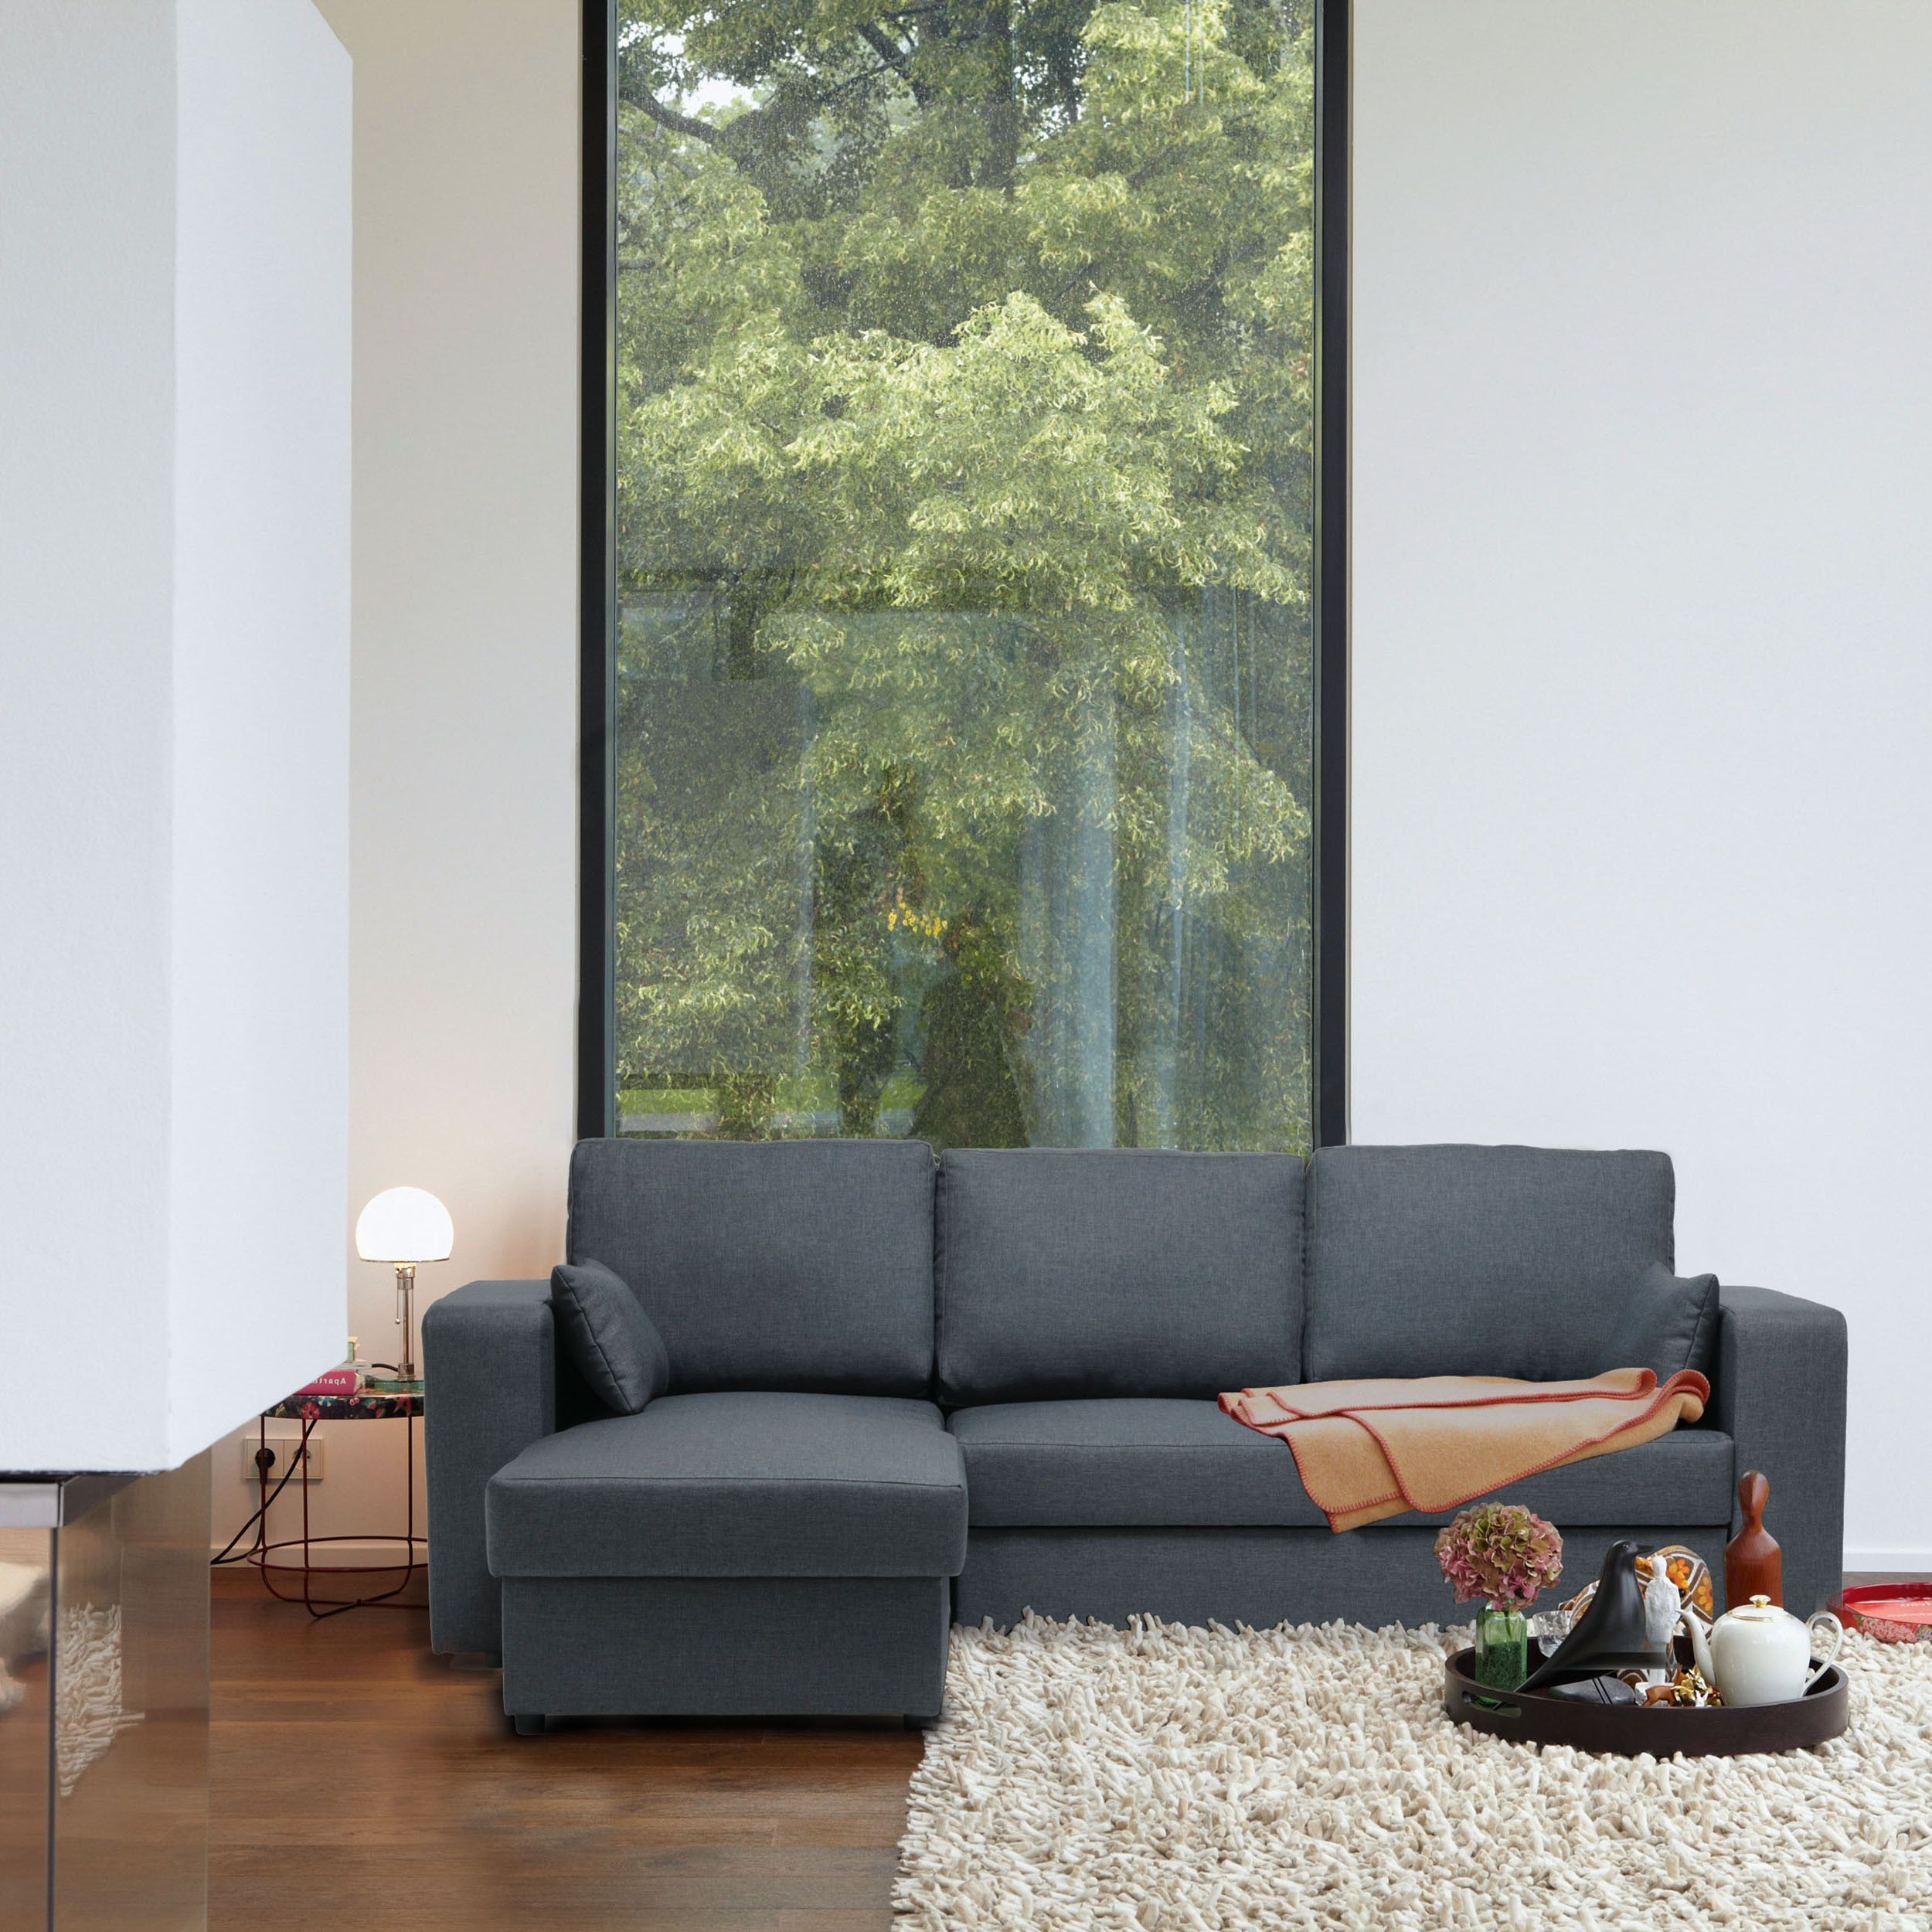 neubrugge sofa mit longchair im ikarus design shop gem tliche couch f r alle belange lounge. Black Bedroom Furniture Sets. Home Design Ideas